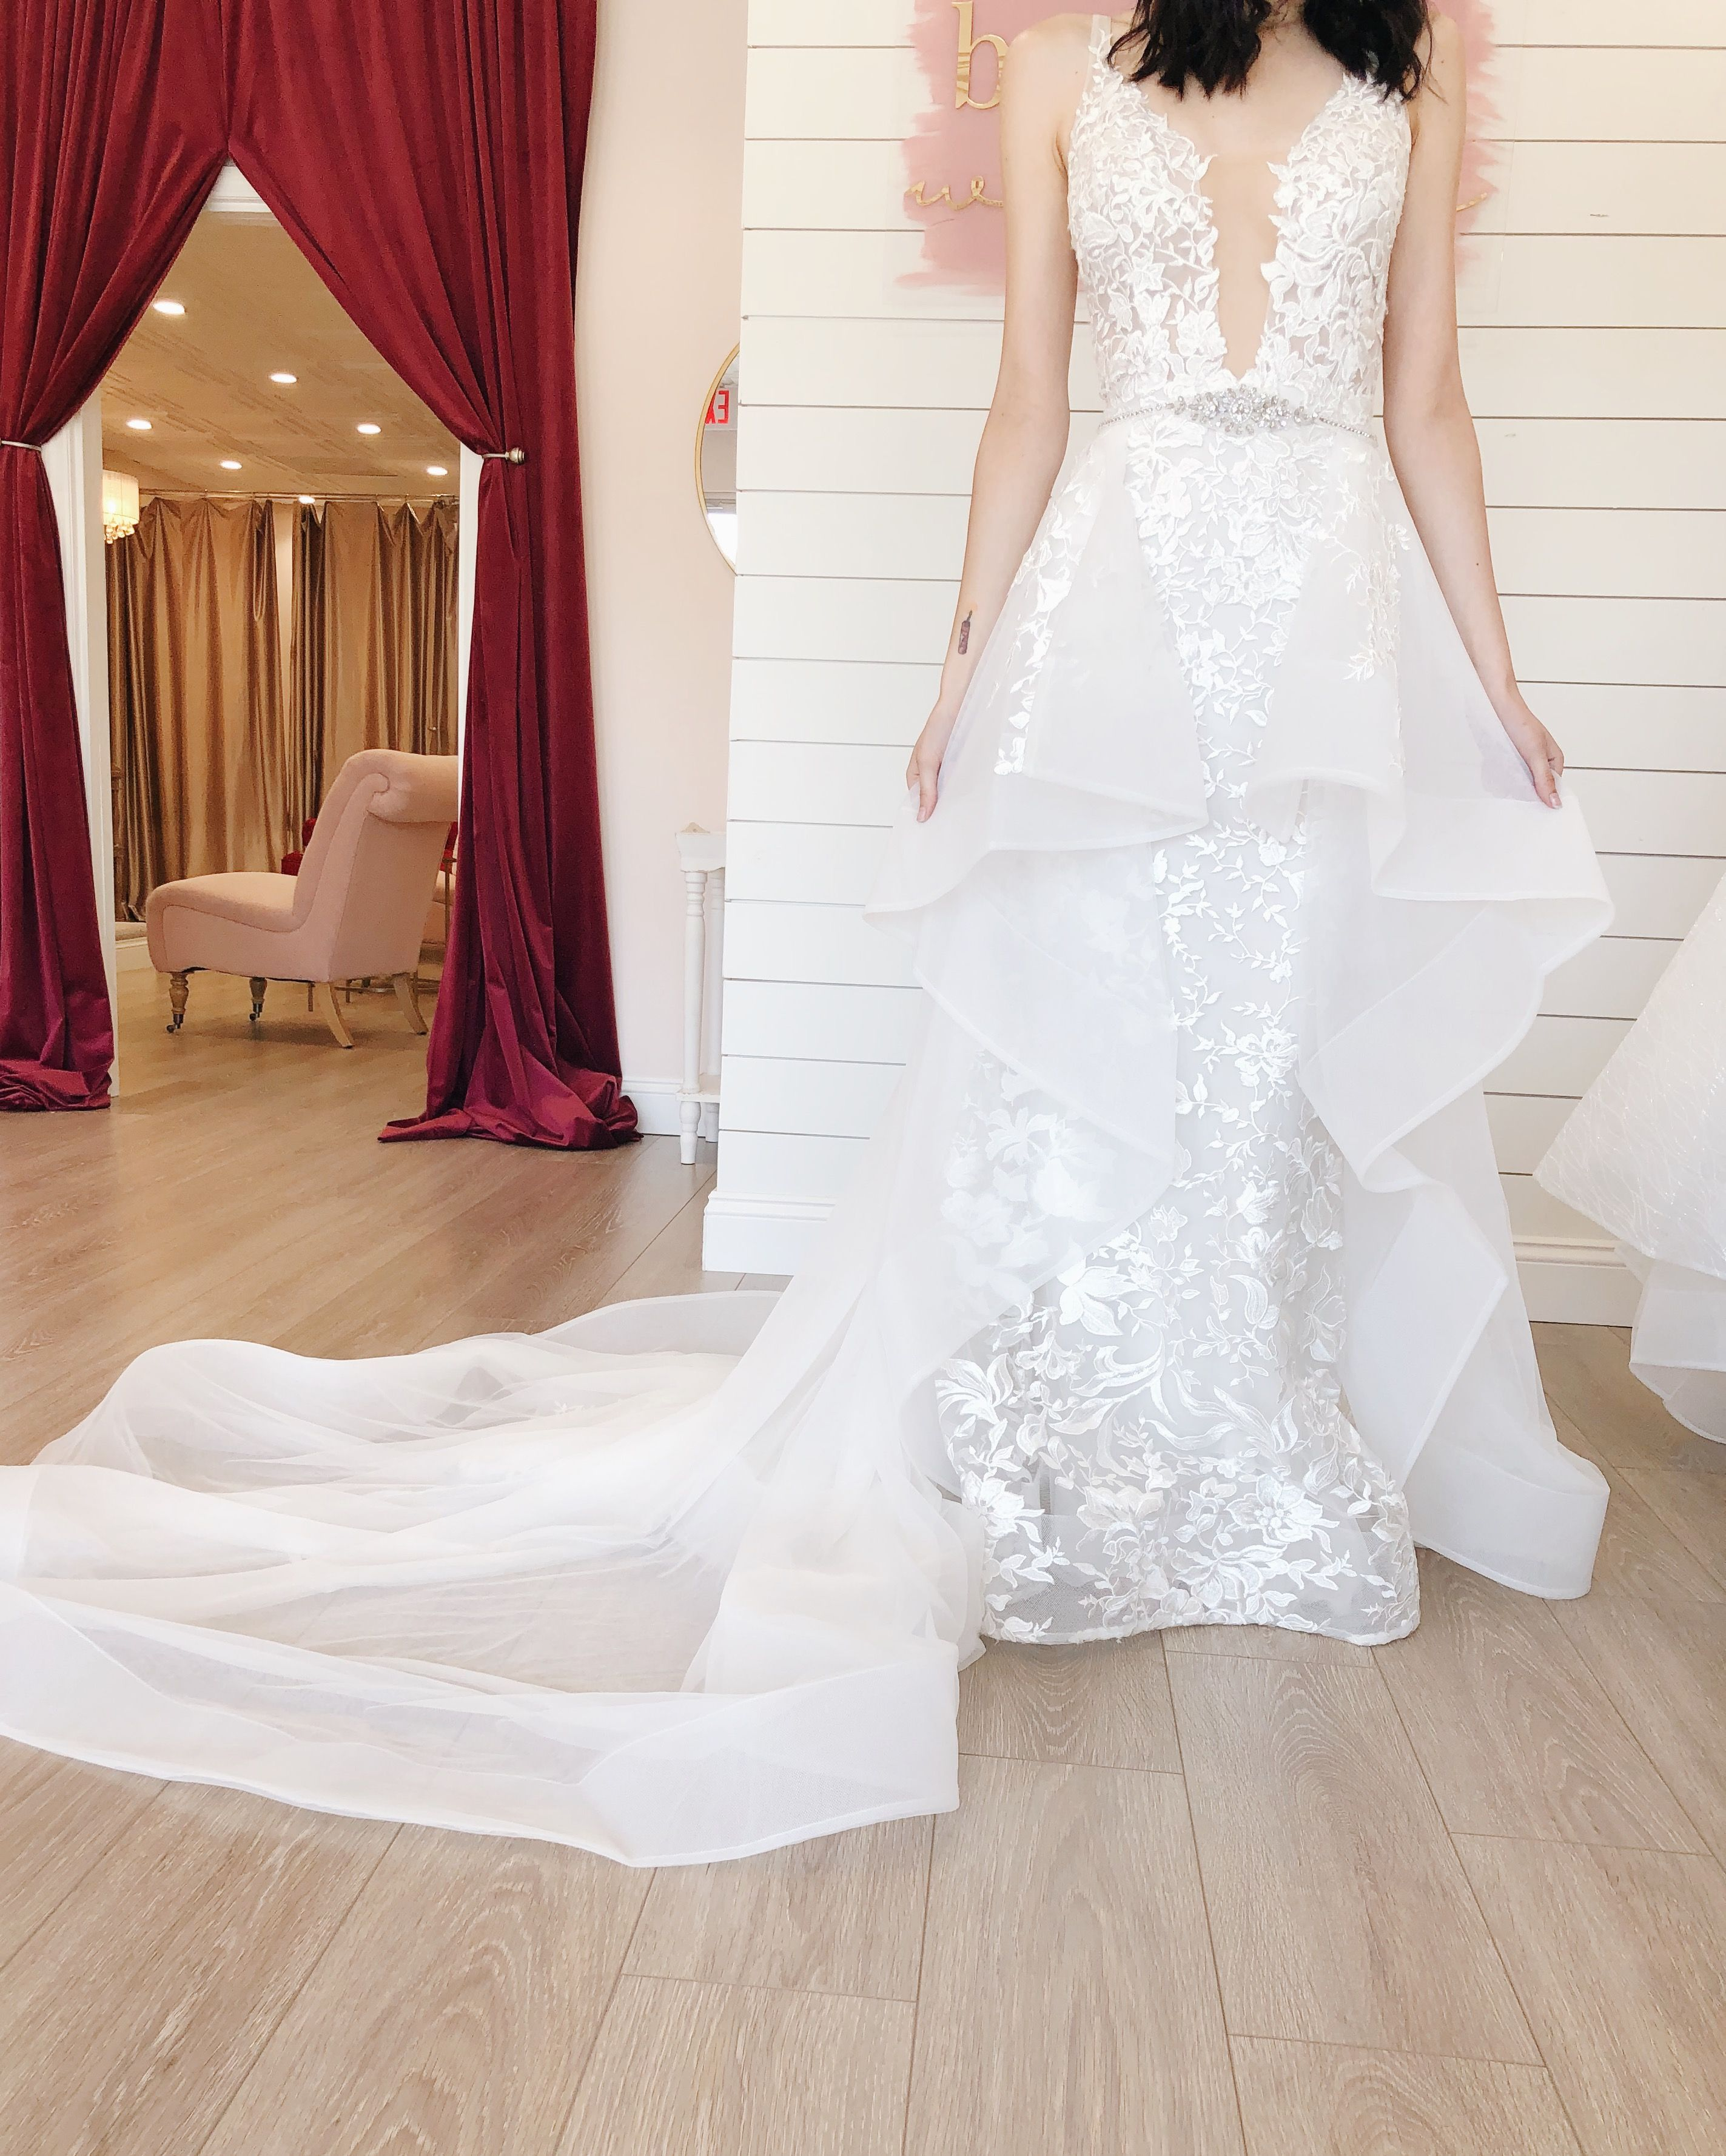 The Mirai wedding gown with it's detachable layered tulle